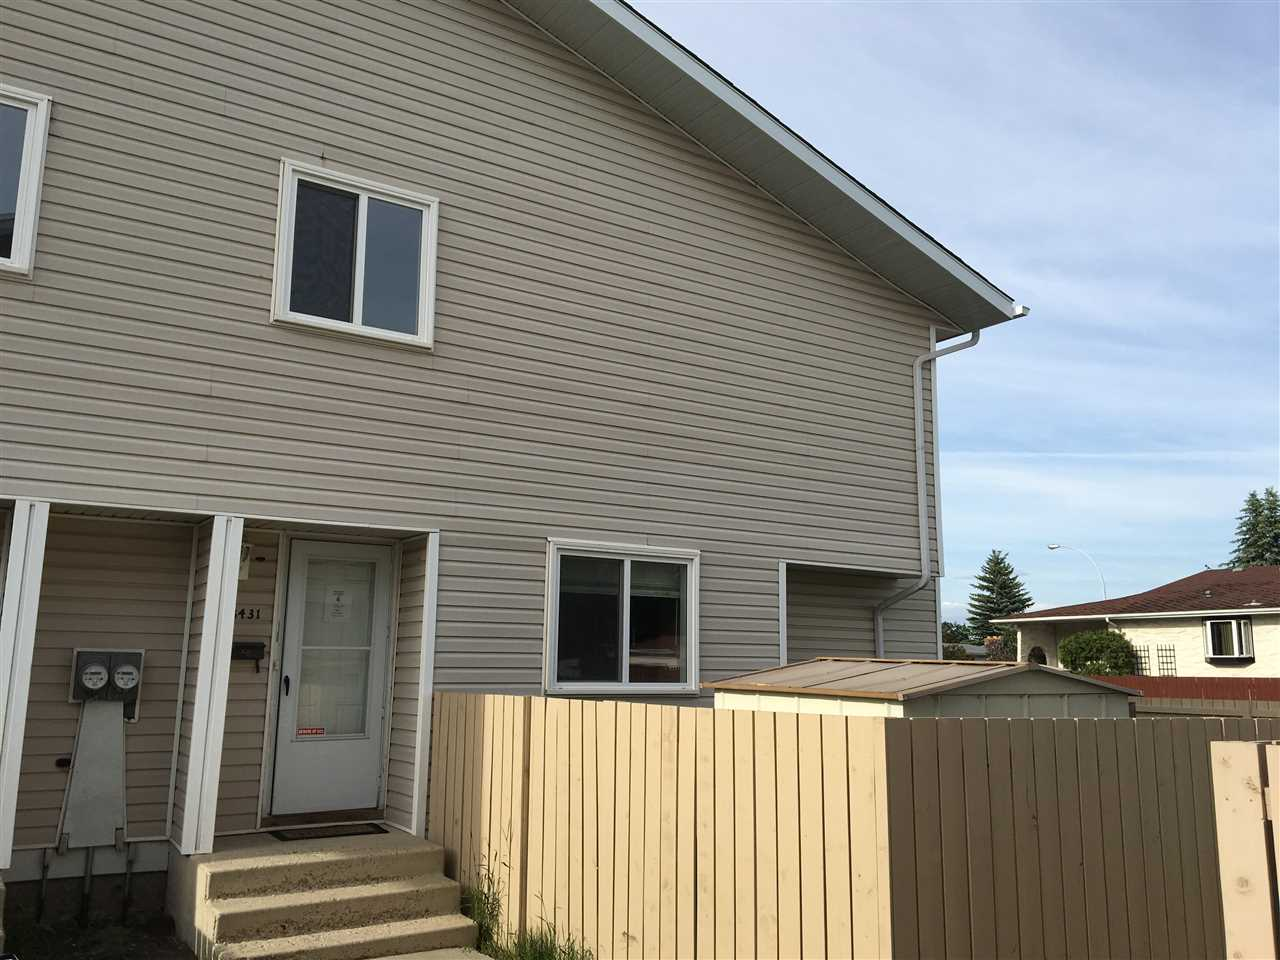 Main Photo: 13431 43 Street in Edmonton: Zone 35 Townhouse for sale : MLS® # E4067807